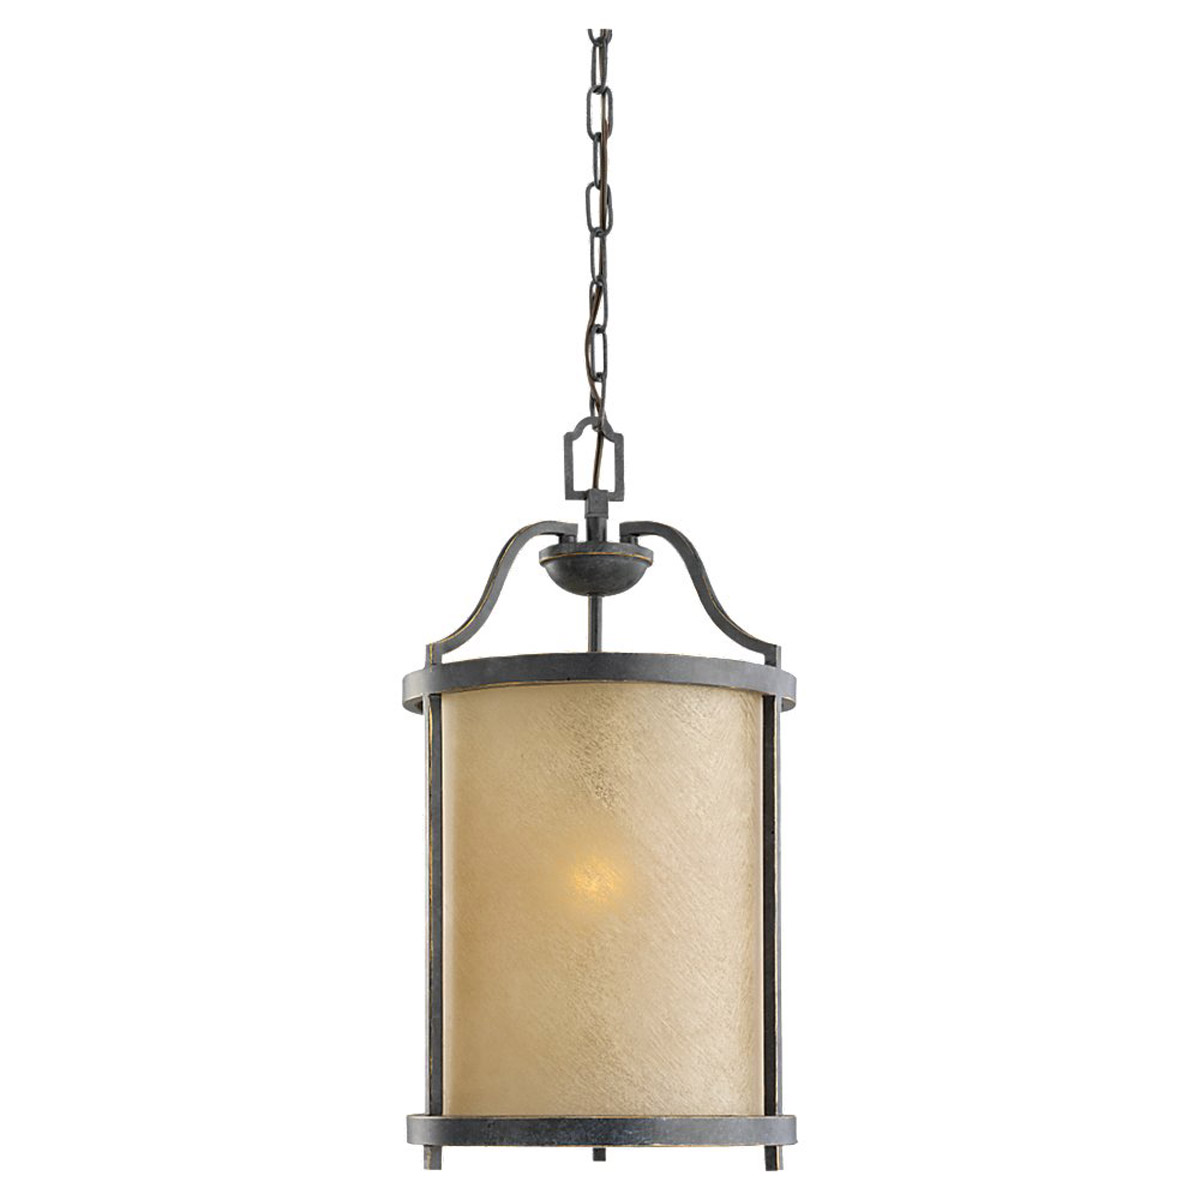 Sea Gull 51520BLE-845 Roslyn 1 Light 11 inch Flemish Bronze Hall/Foyer Pendant Ceiling Light in Fluorescent photo